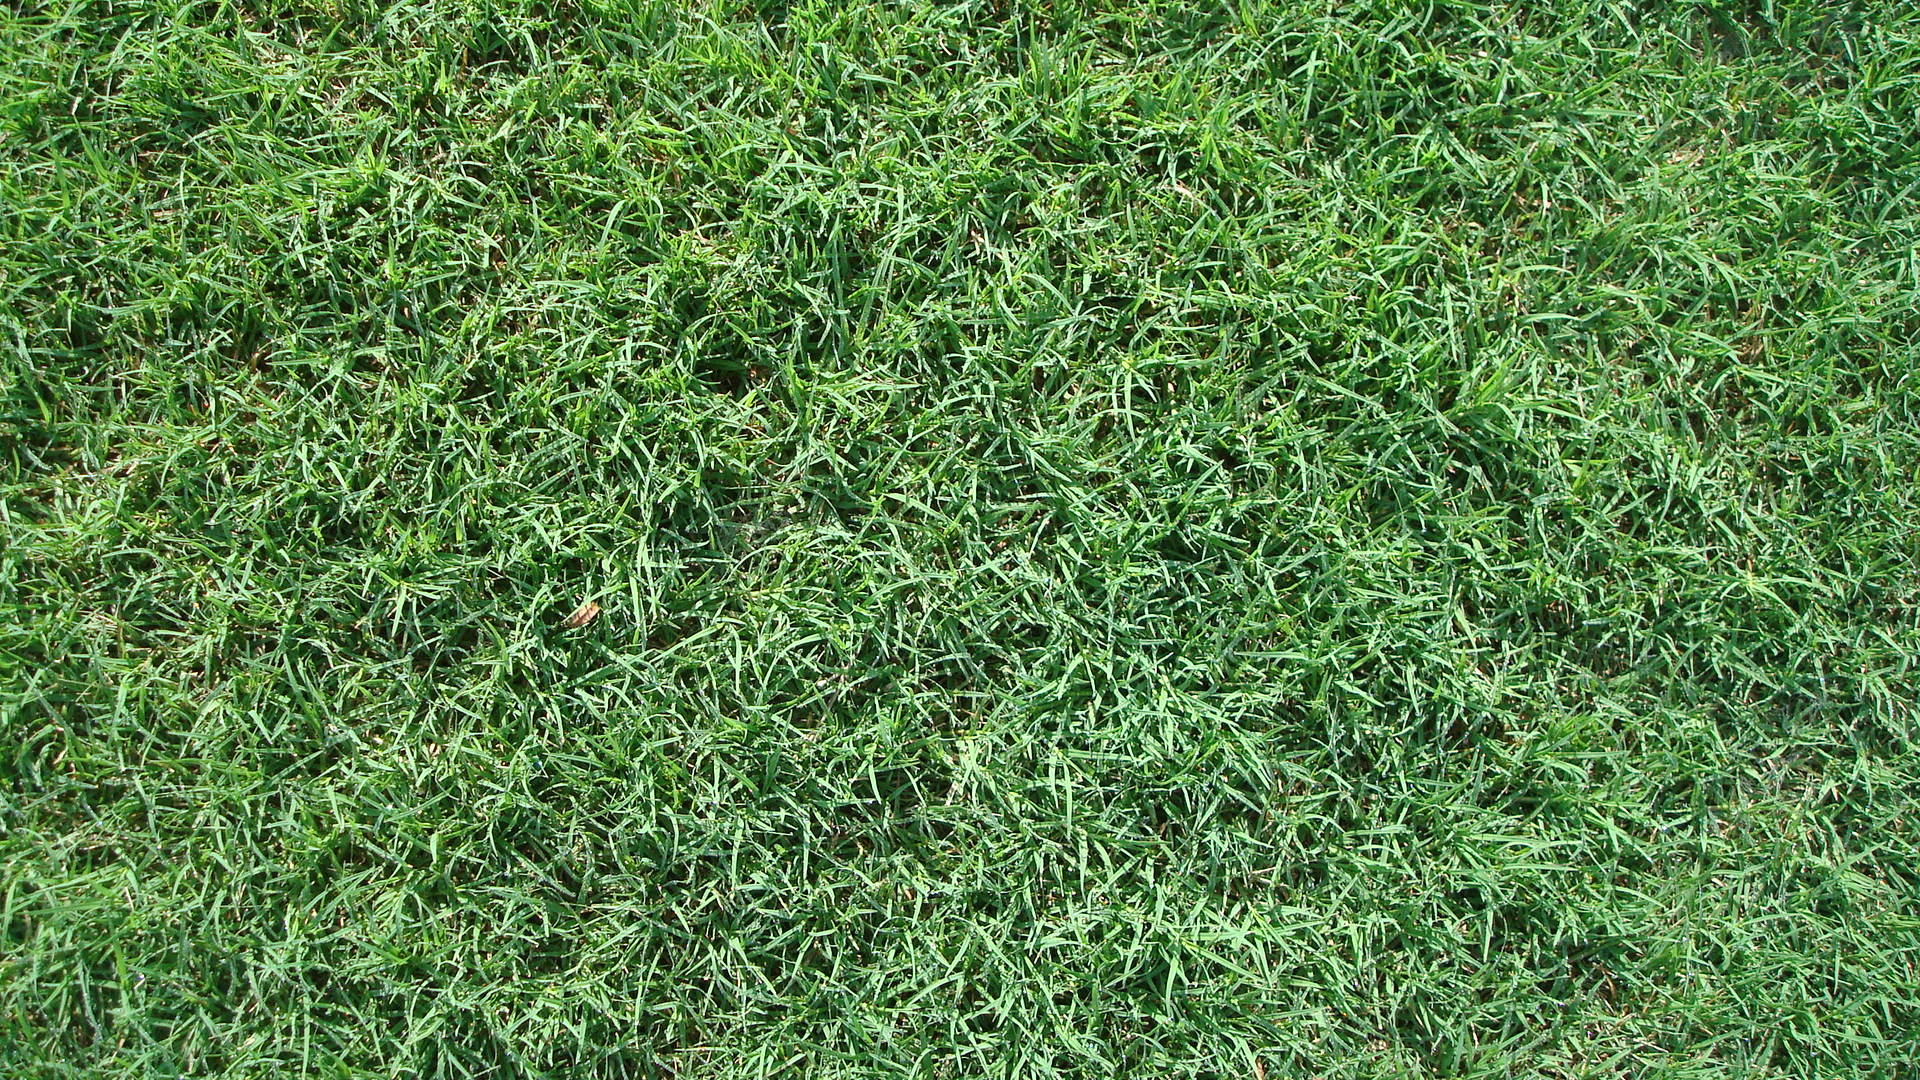 Bermuda grass sod in Louisiana